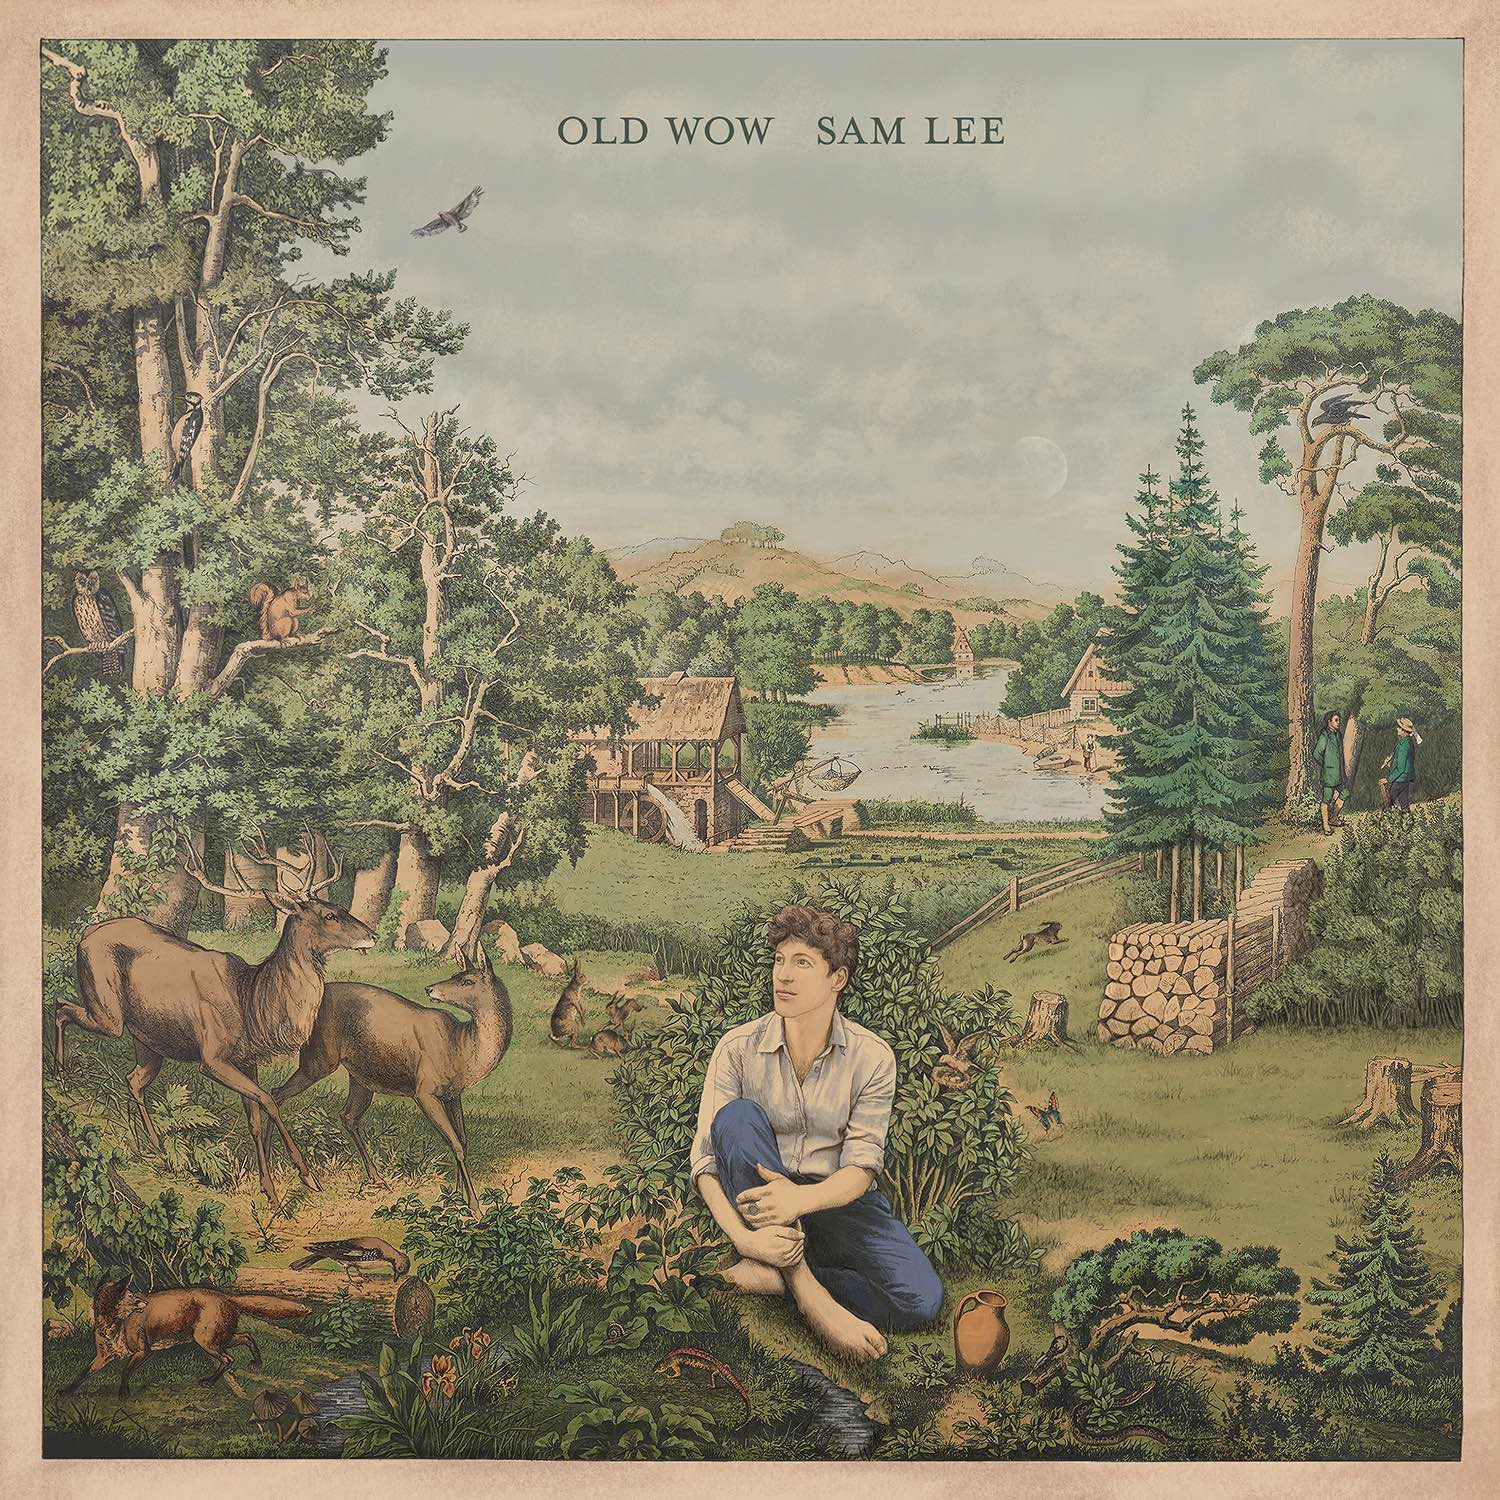 Sam-Lee-Old-Wow-cover-small.jpg